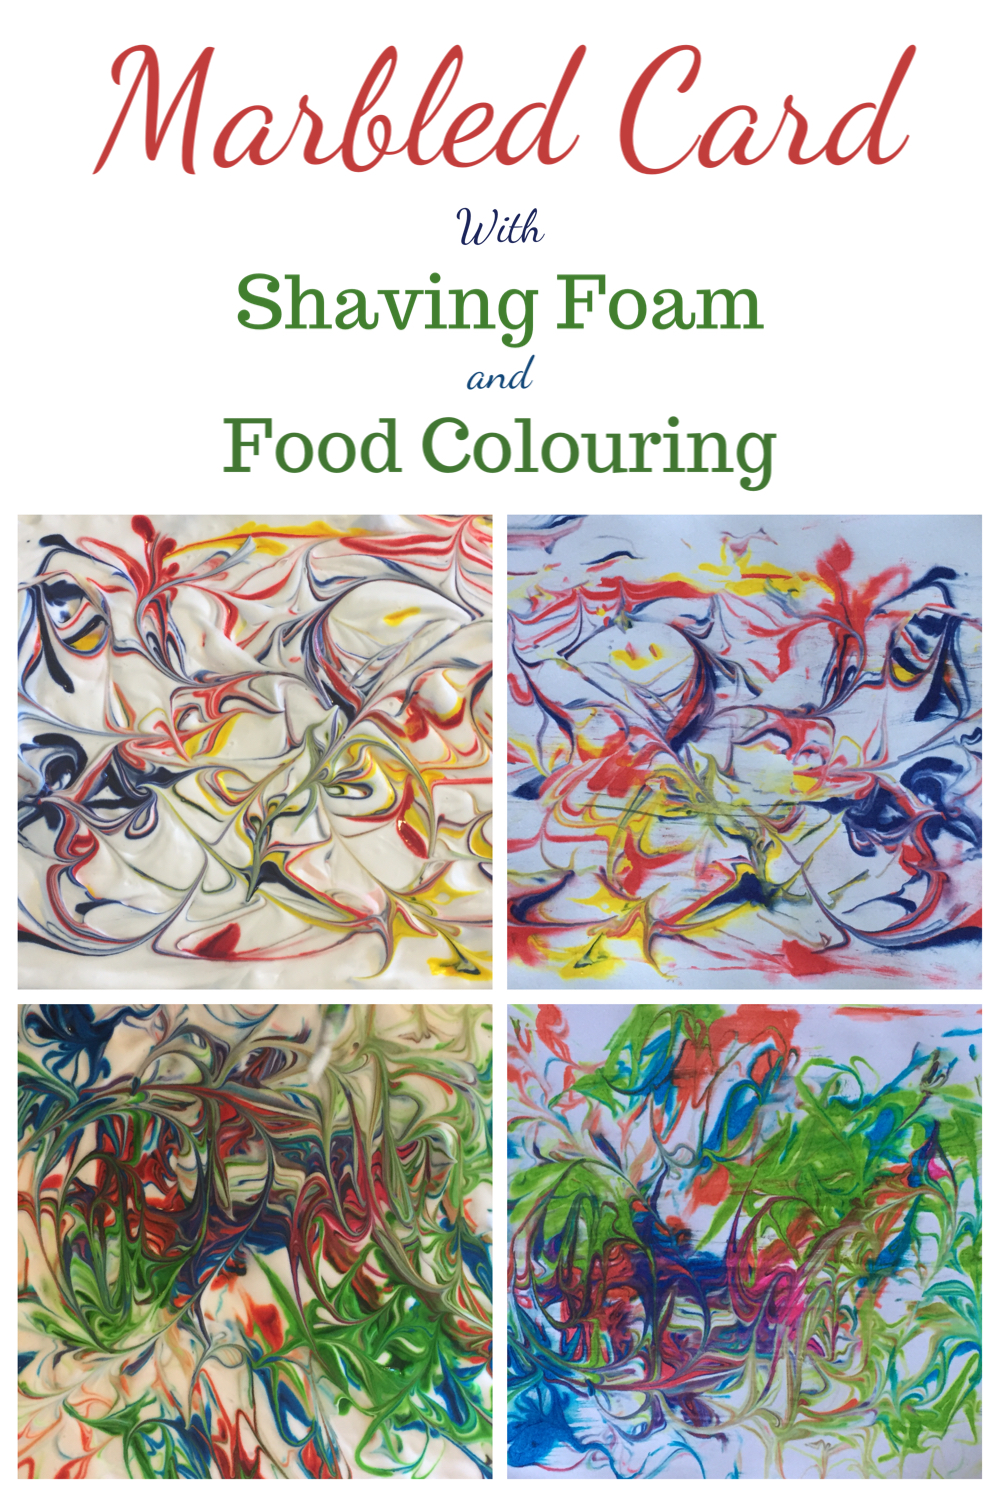 Marble card with shaving foam and food colouring